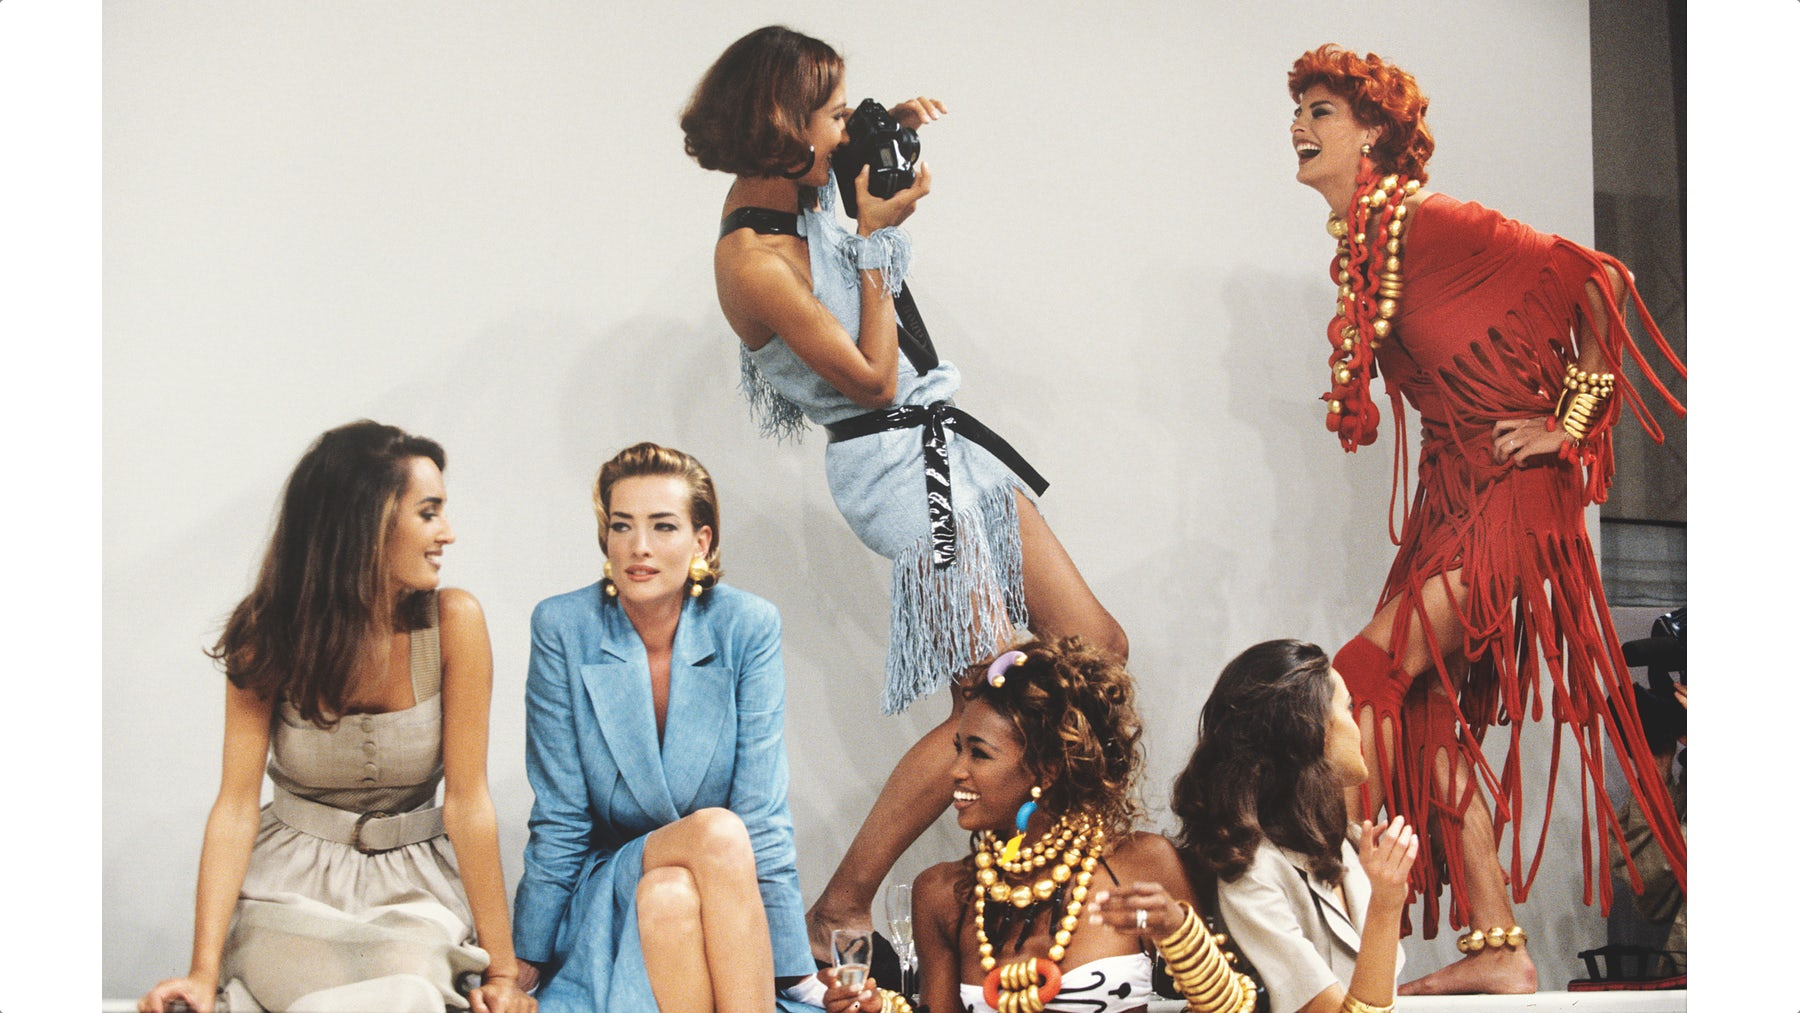 The supermodels of the day, captured backstage at the S/S'92 Fendi show by Chris Moore | Source: Catwalking.com